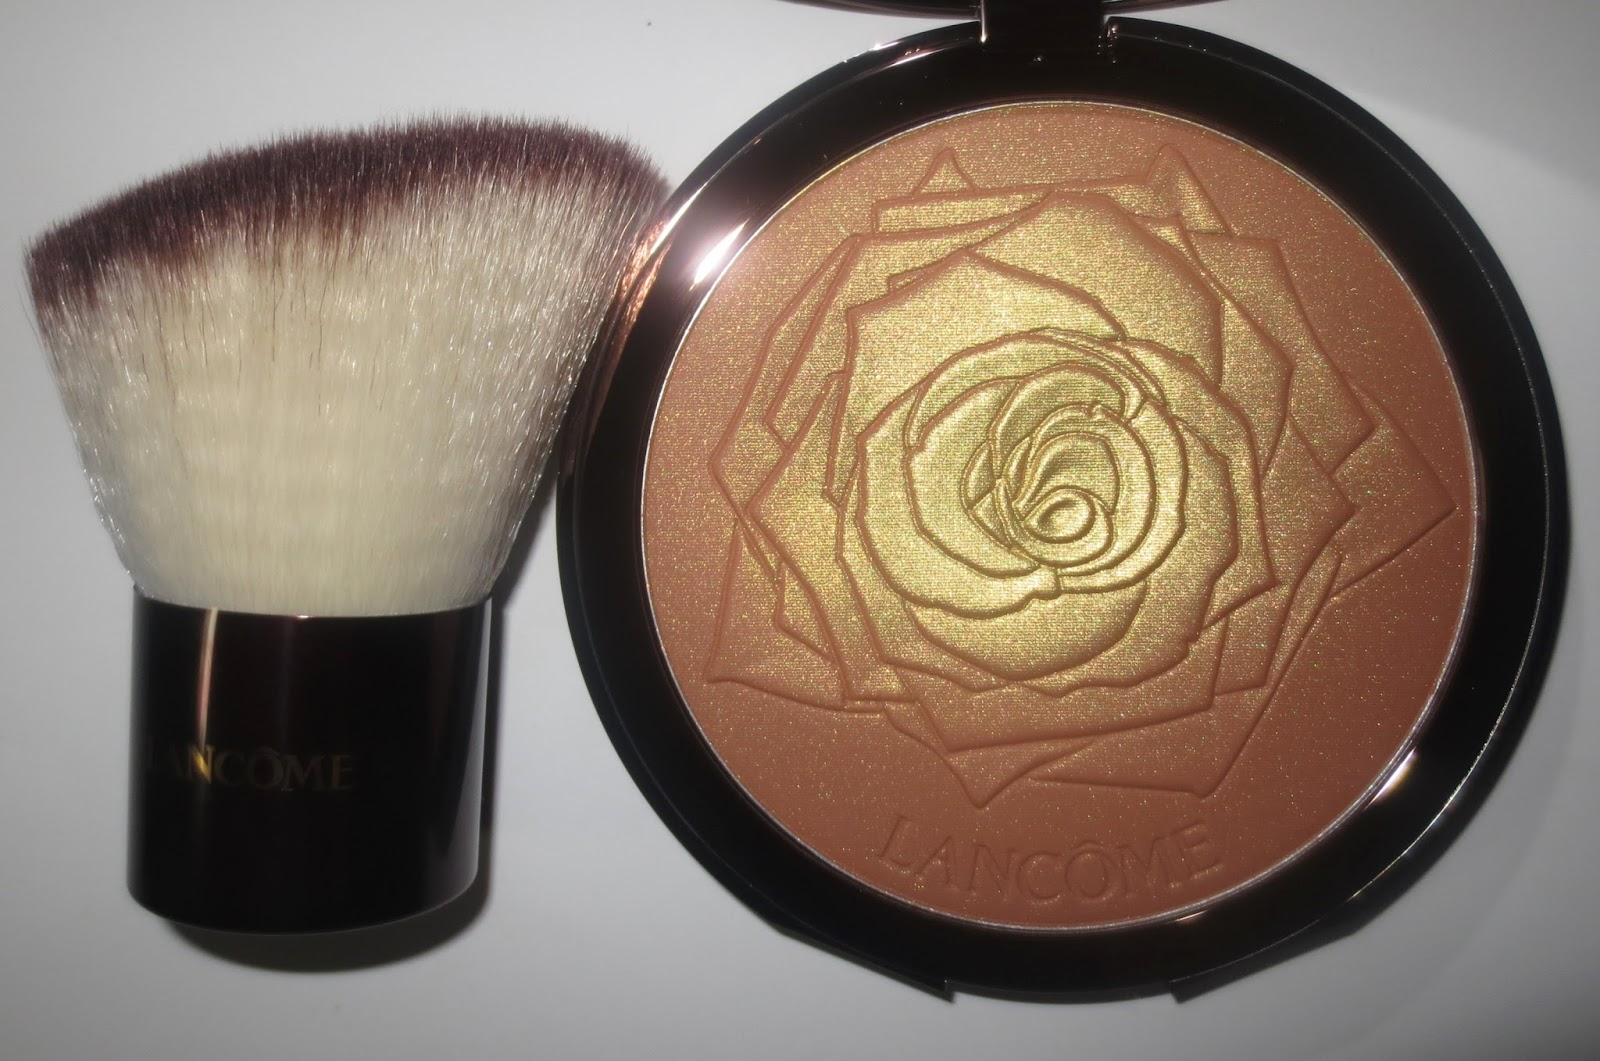 Lancôme Golden Riviera Collection Star Bronzing Powder and Bronzing Brush